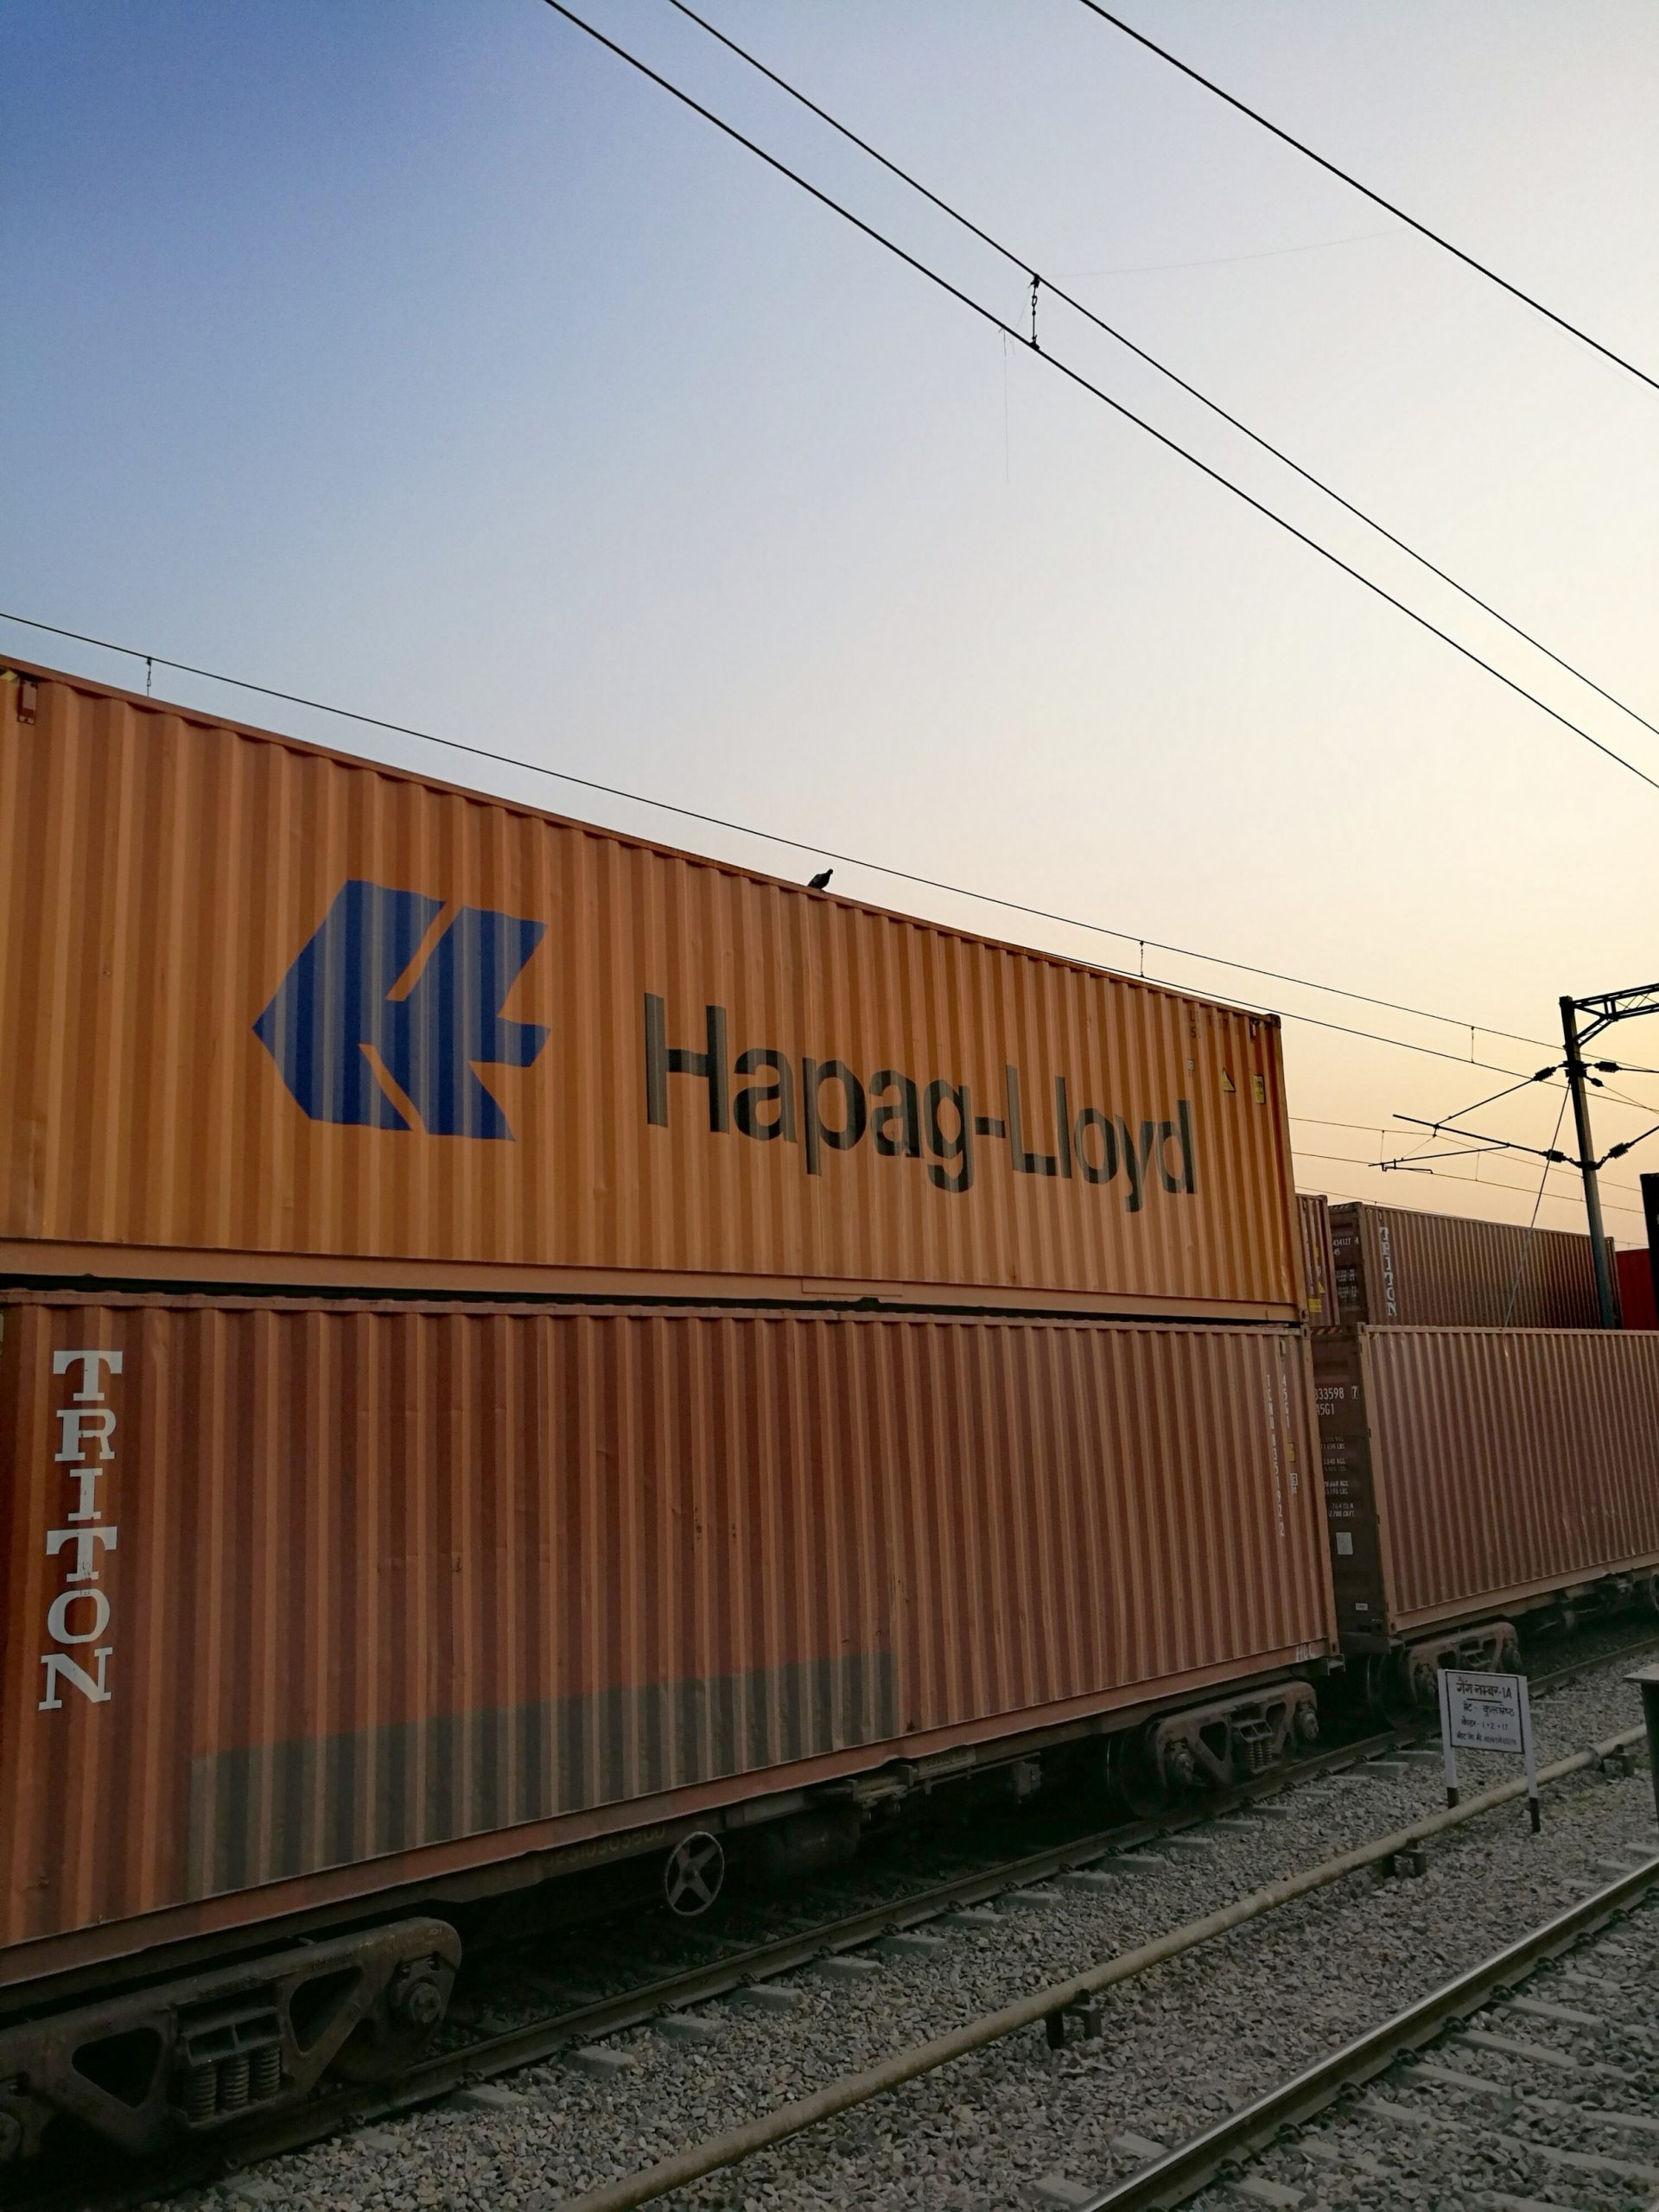 Technology is coming fast down the Freight Forwarding Tracks in 2019